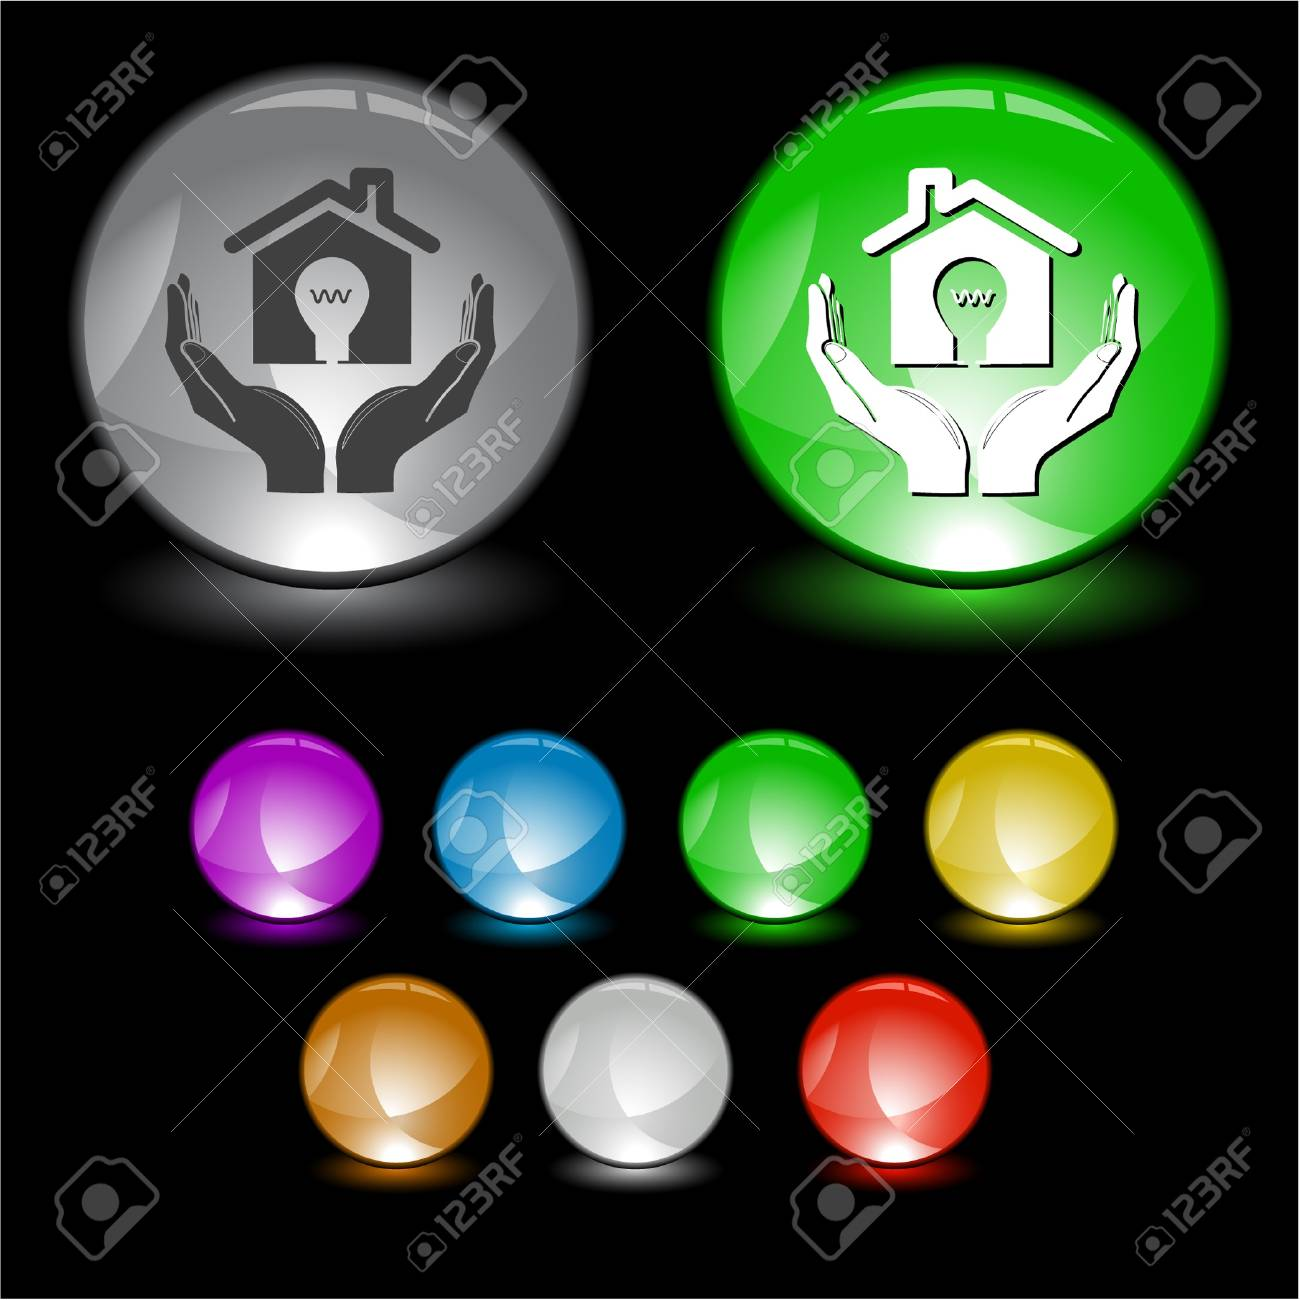 economy in hands. interface element. Stock Photo - 8249330